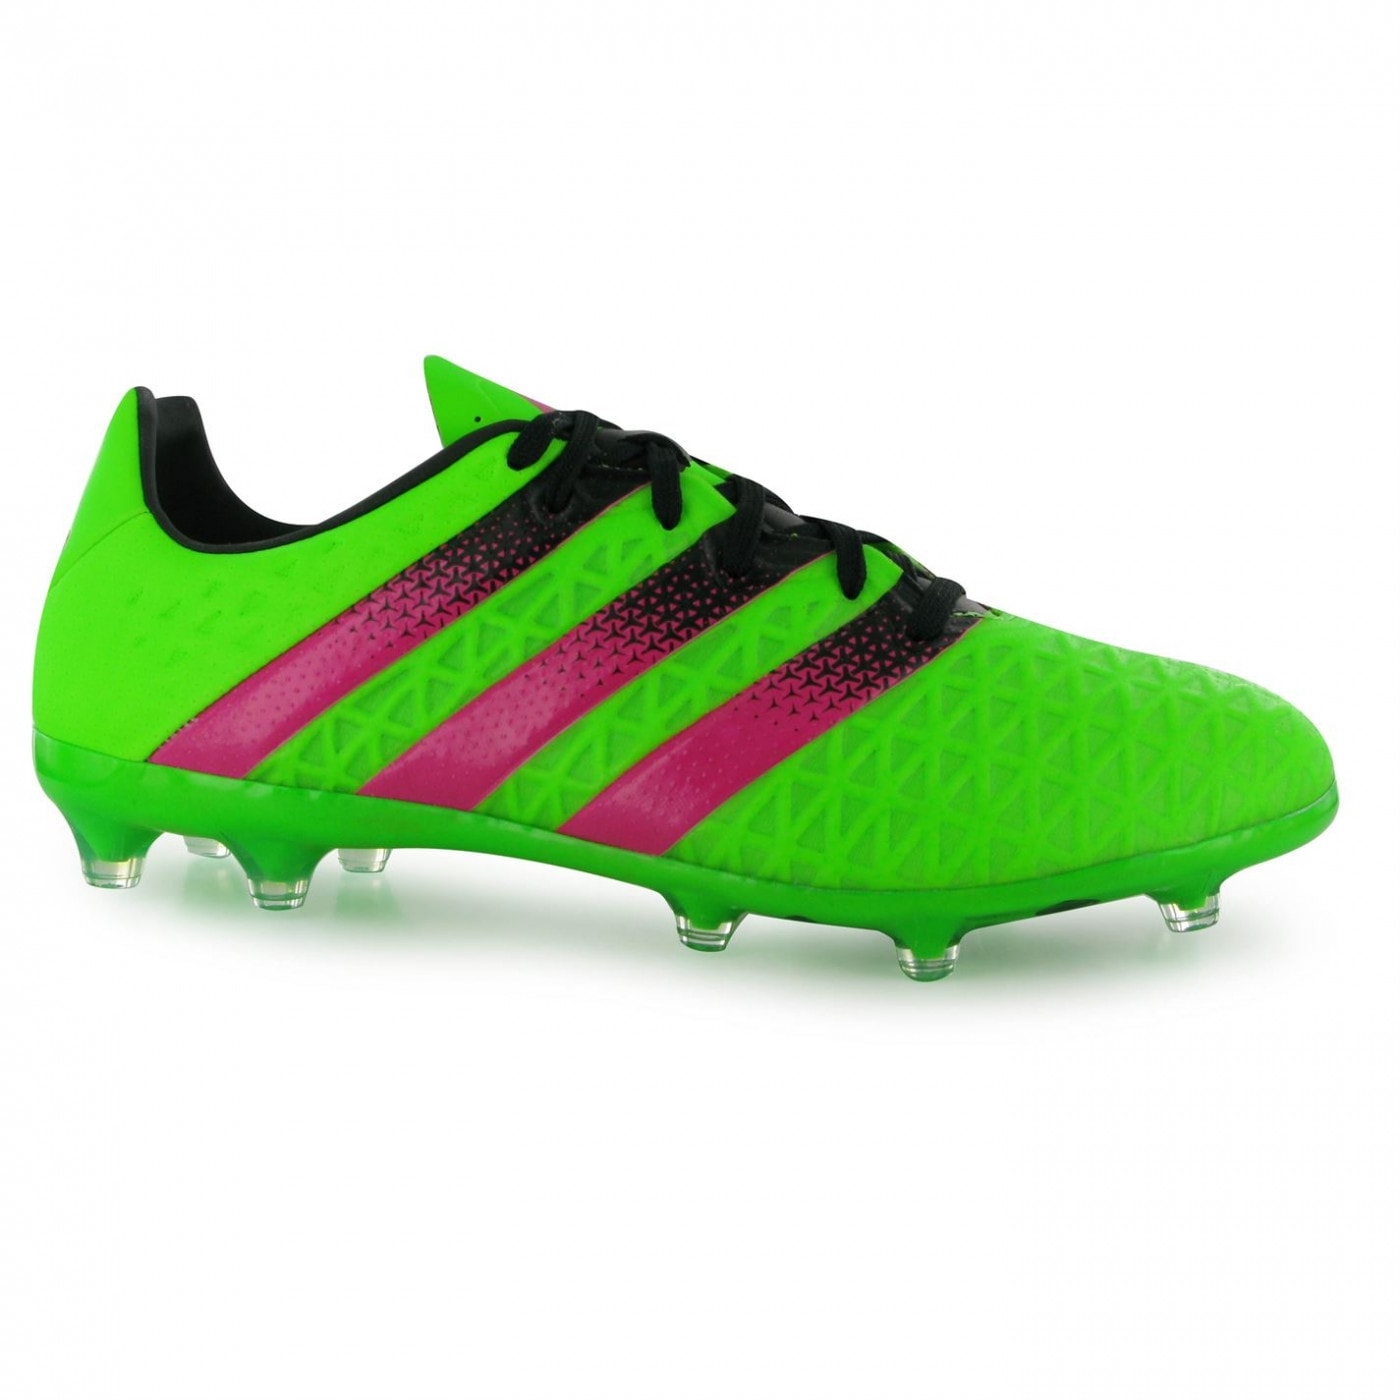 Adidas Ace 16.2 FG Mens Football Boots